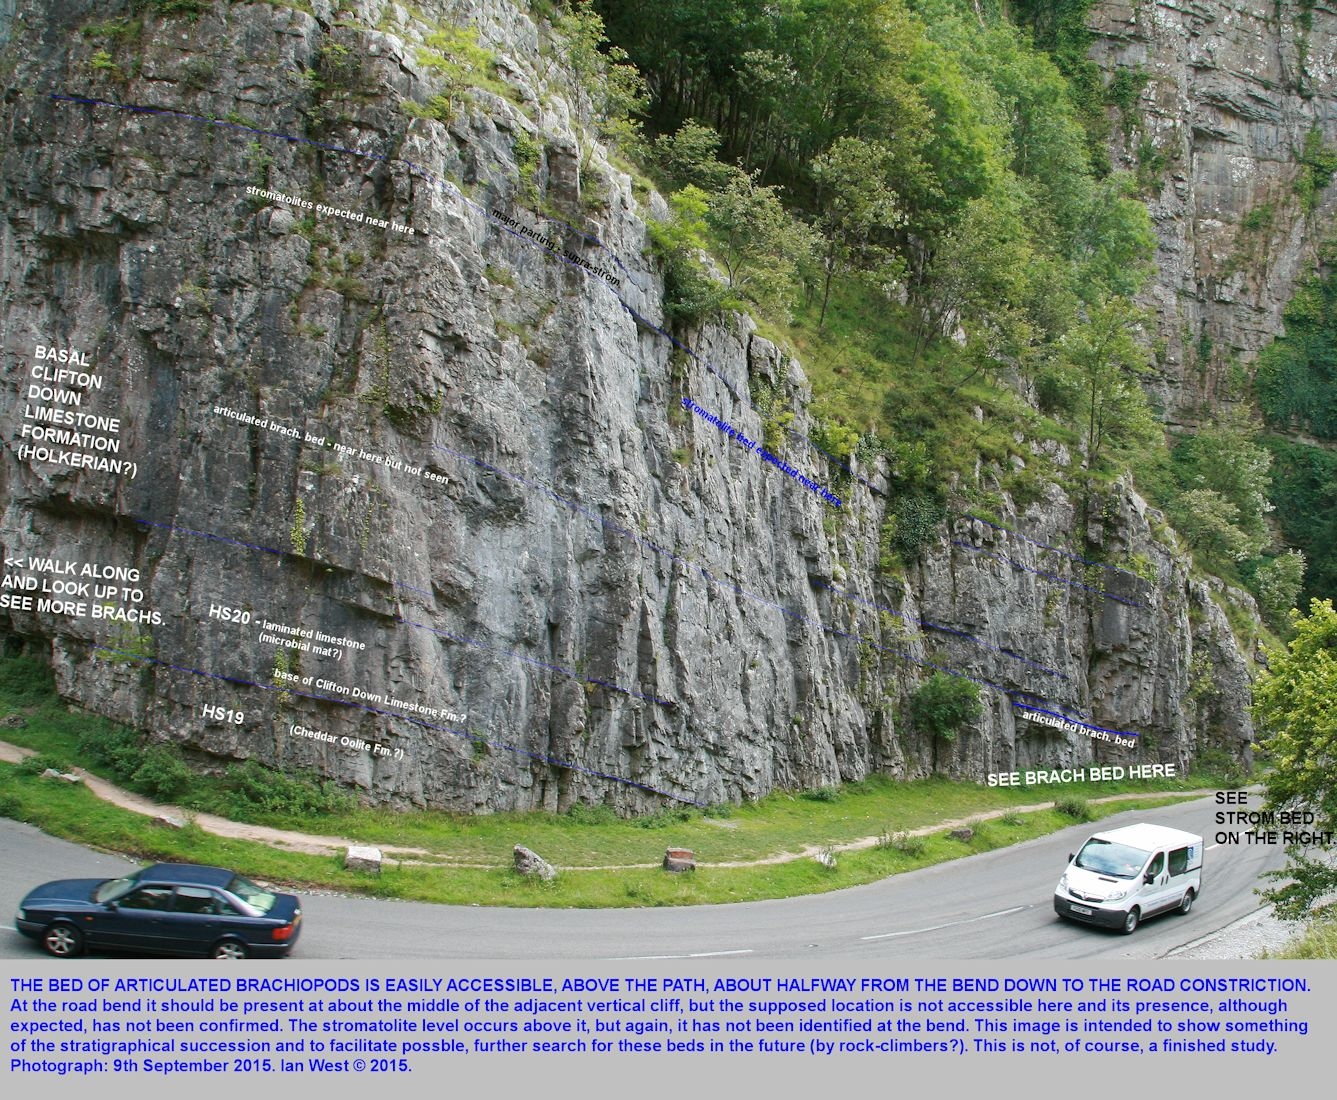 A view of the inner, down-gorge cliff of Horseshoe Bend, Cheddar Gorge, Mendip Hills, Somerset, to show the proven and suspected locations of the articulated brachiopod bed